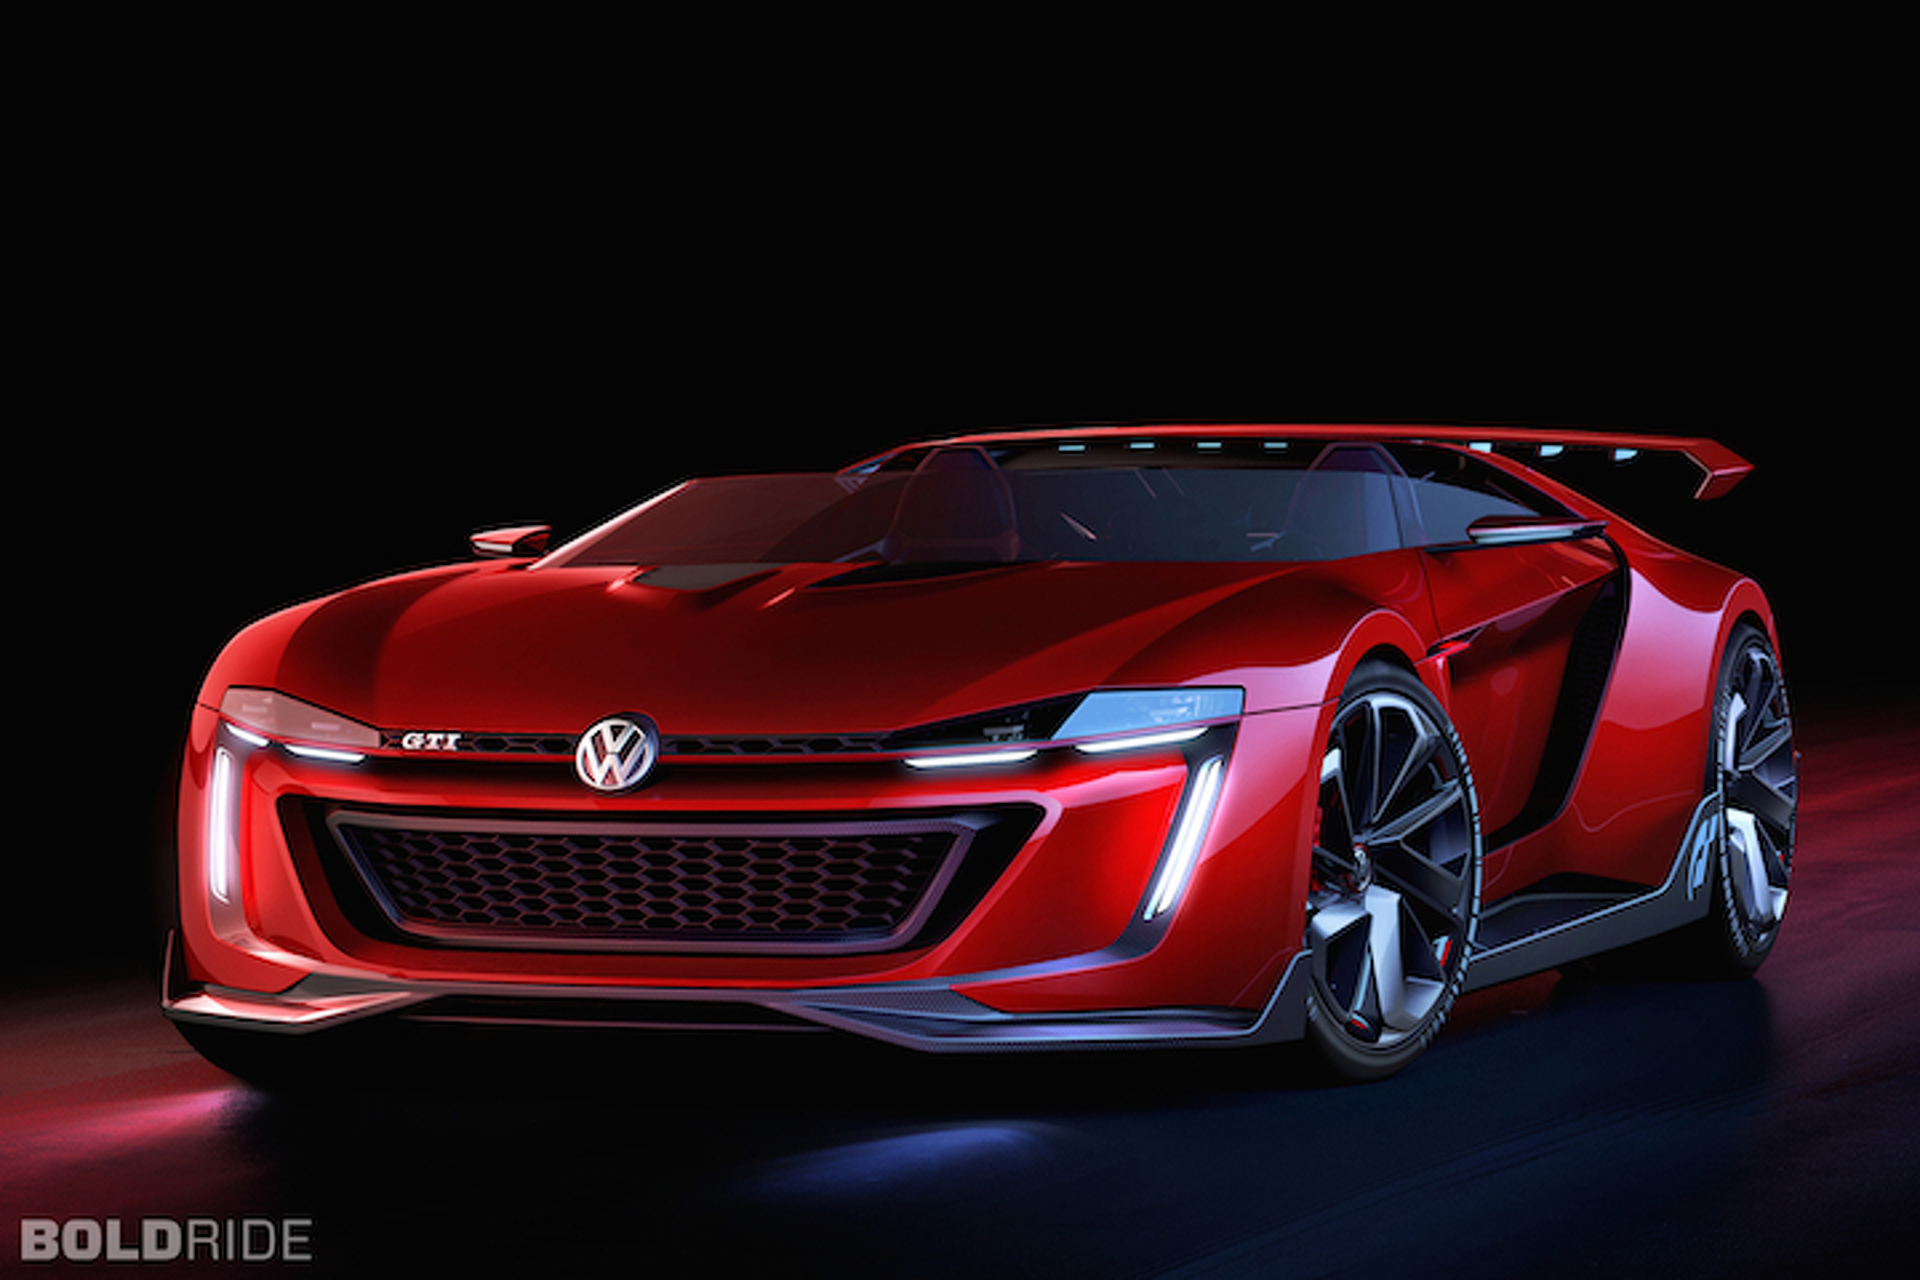 VW Vision Concept Is The 500 HP GTI Roadster We Need